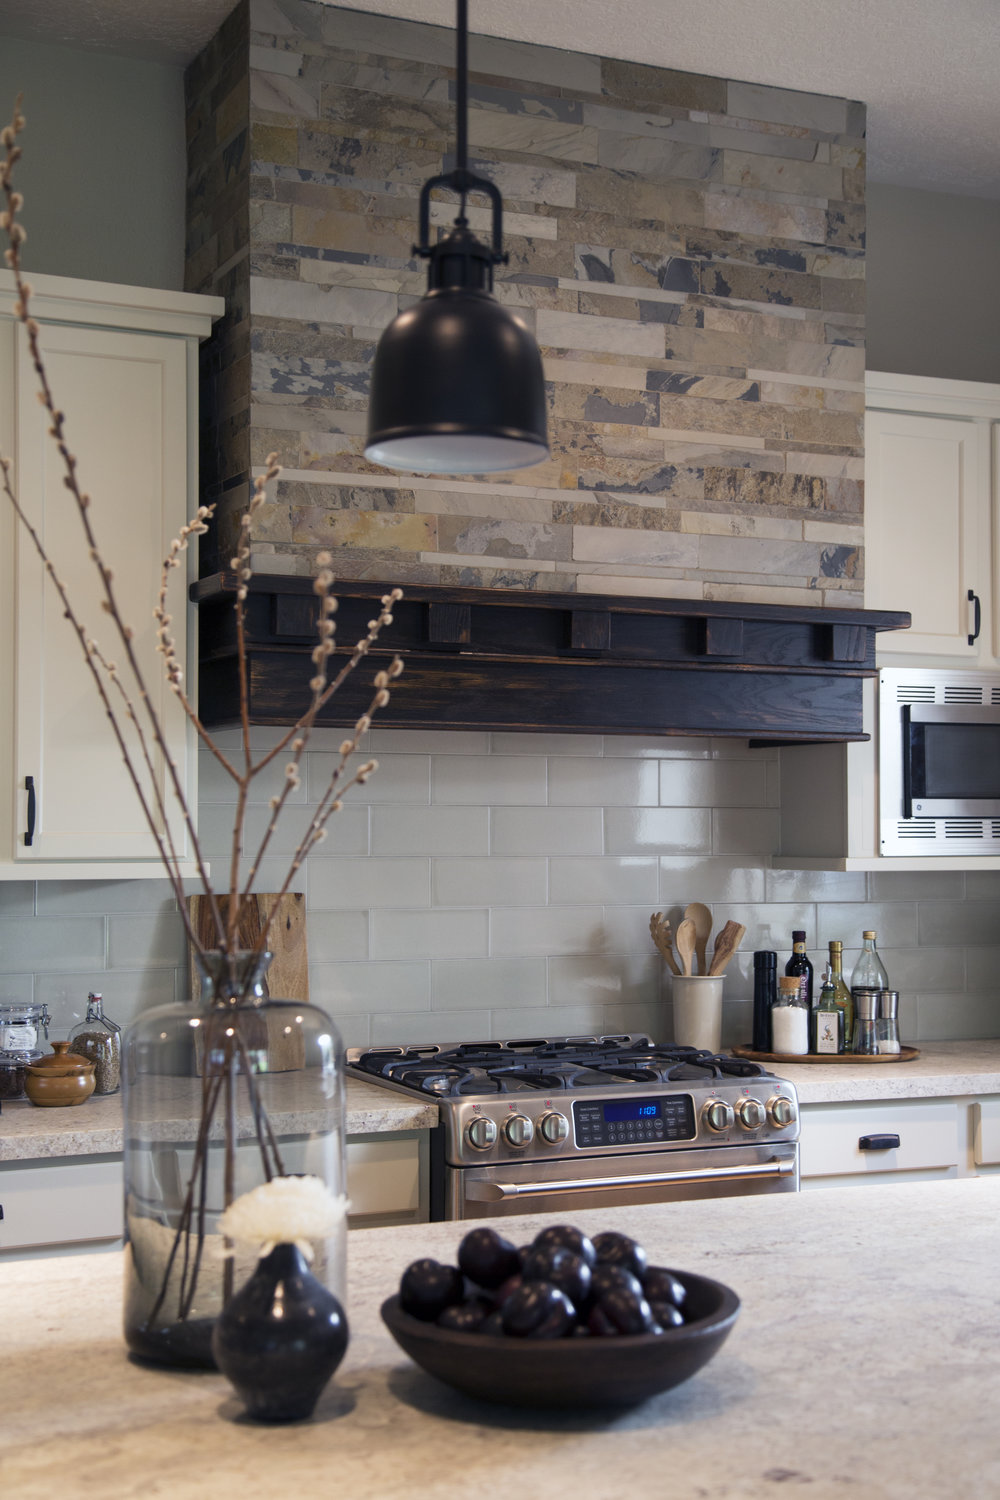 Honed granite countertops - Carla Aston Designer, Tori Aston Photographer